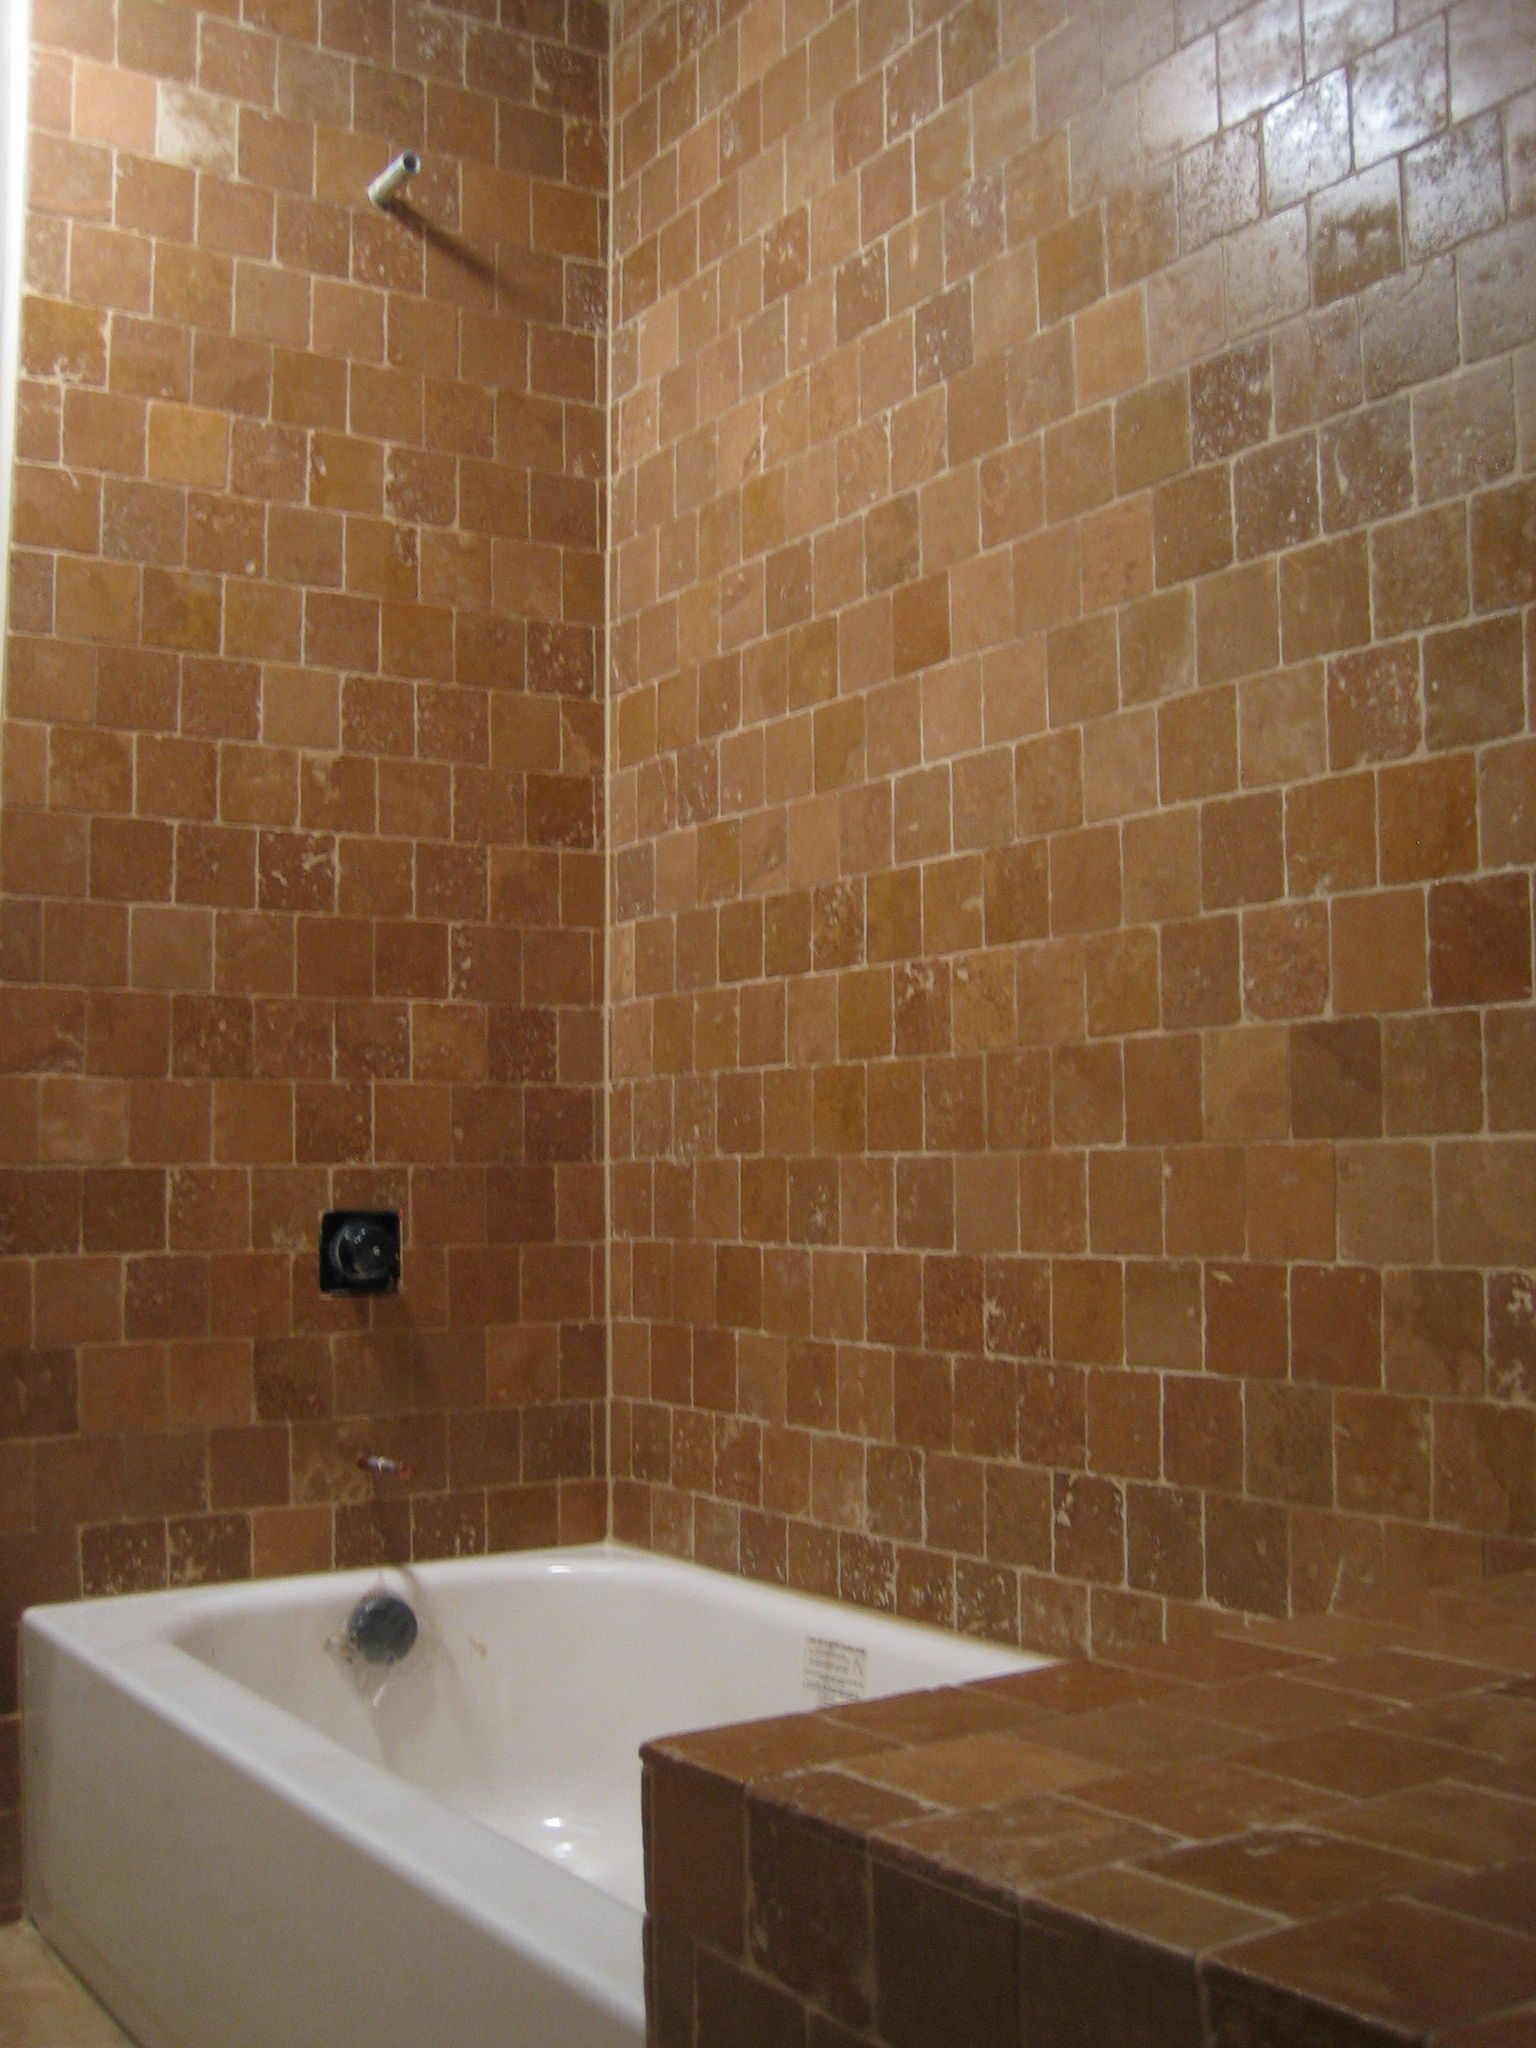 tiled tub surround pictures | Bathtub Surrounds Ma Bathtub Tile ...